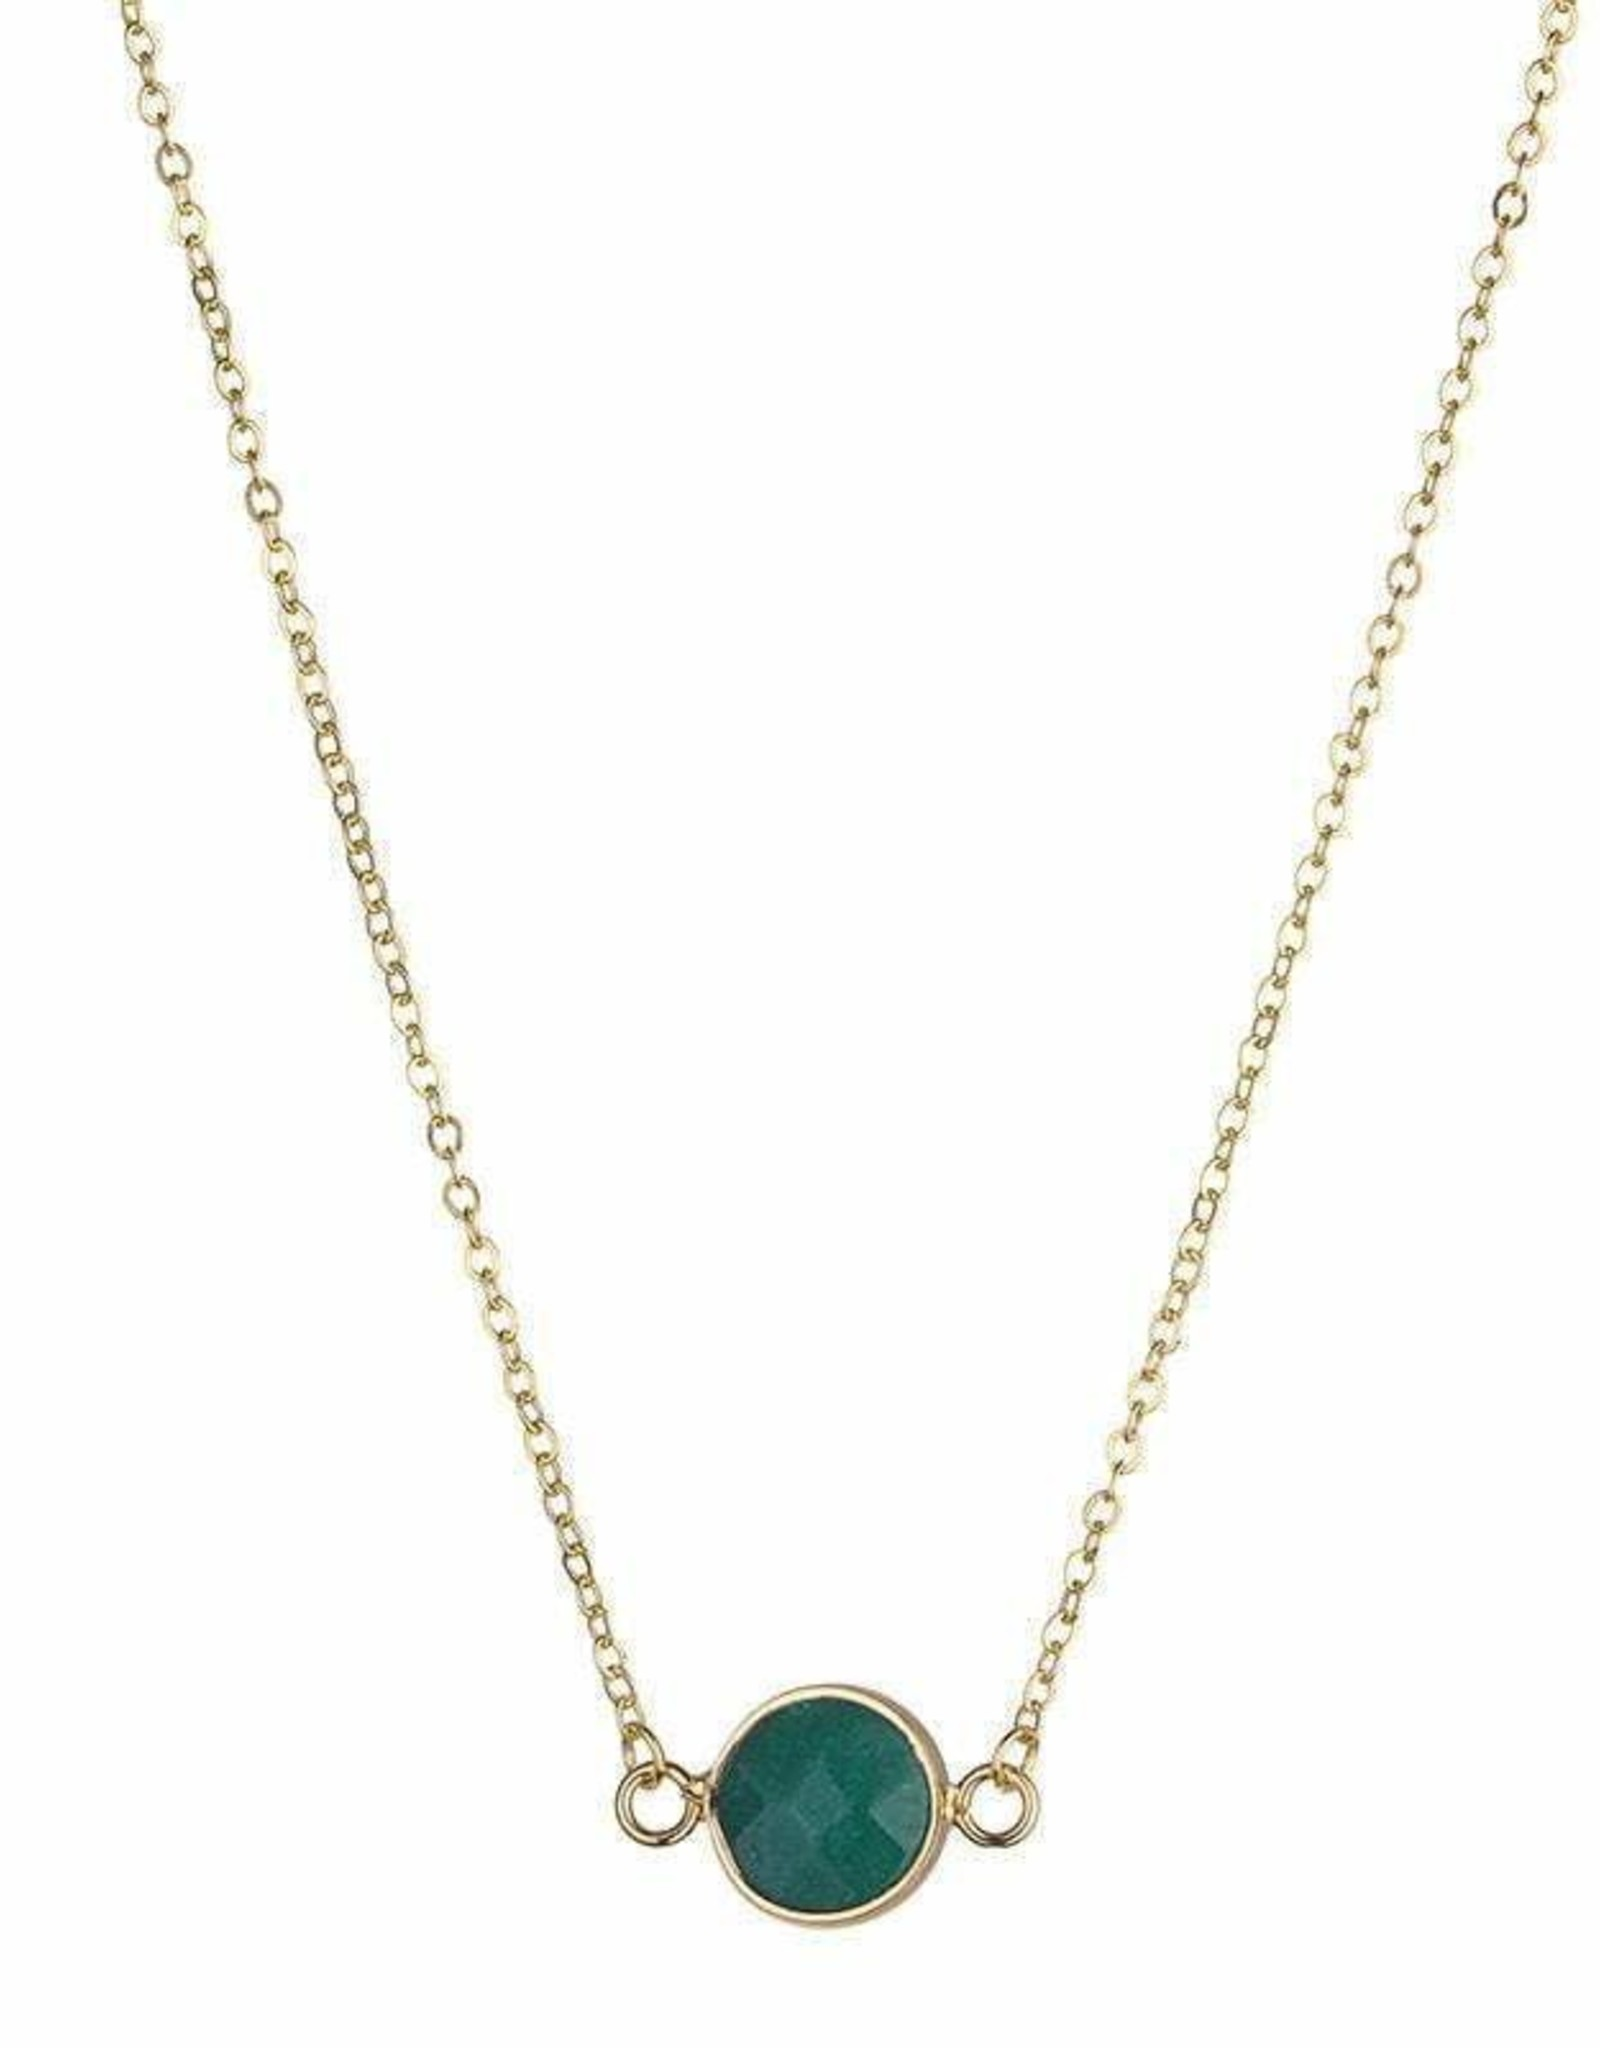 Sally Stone Necklace